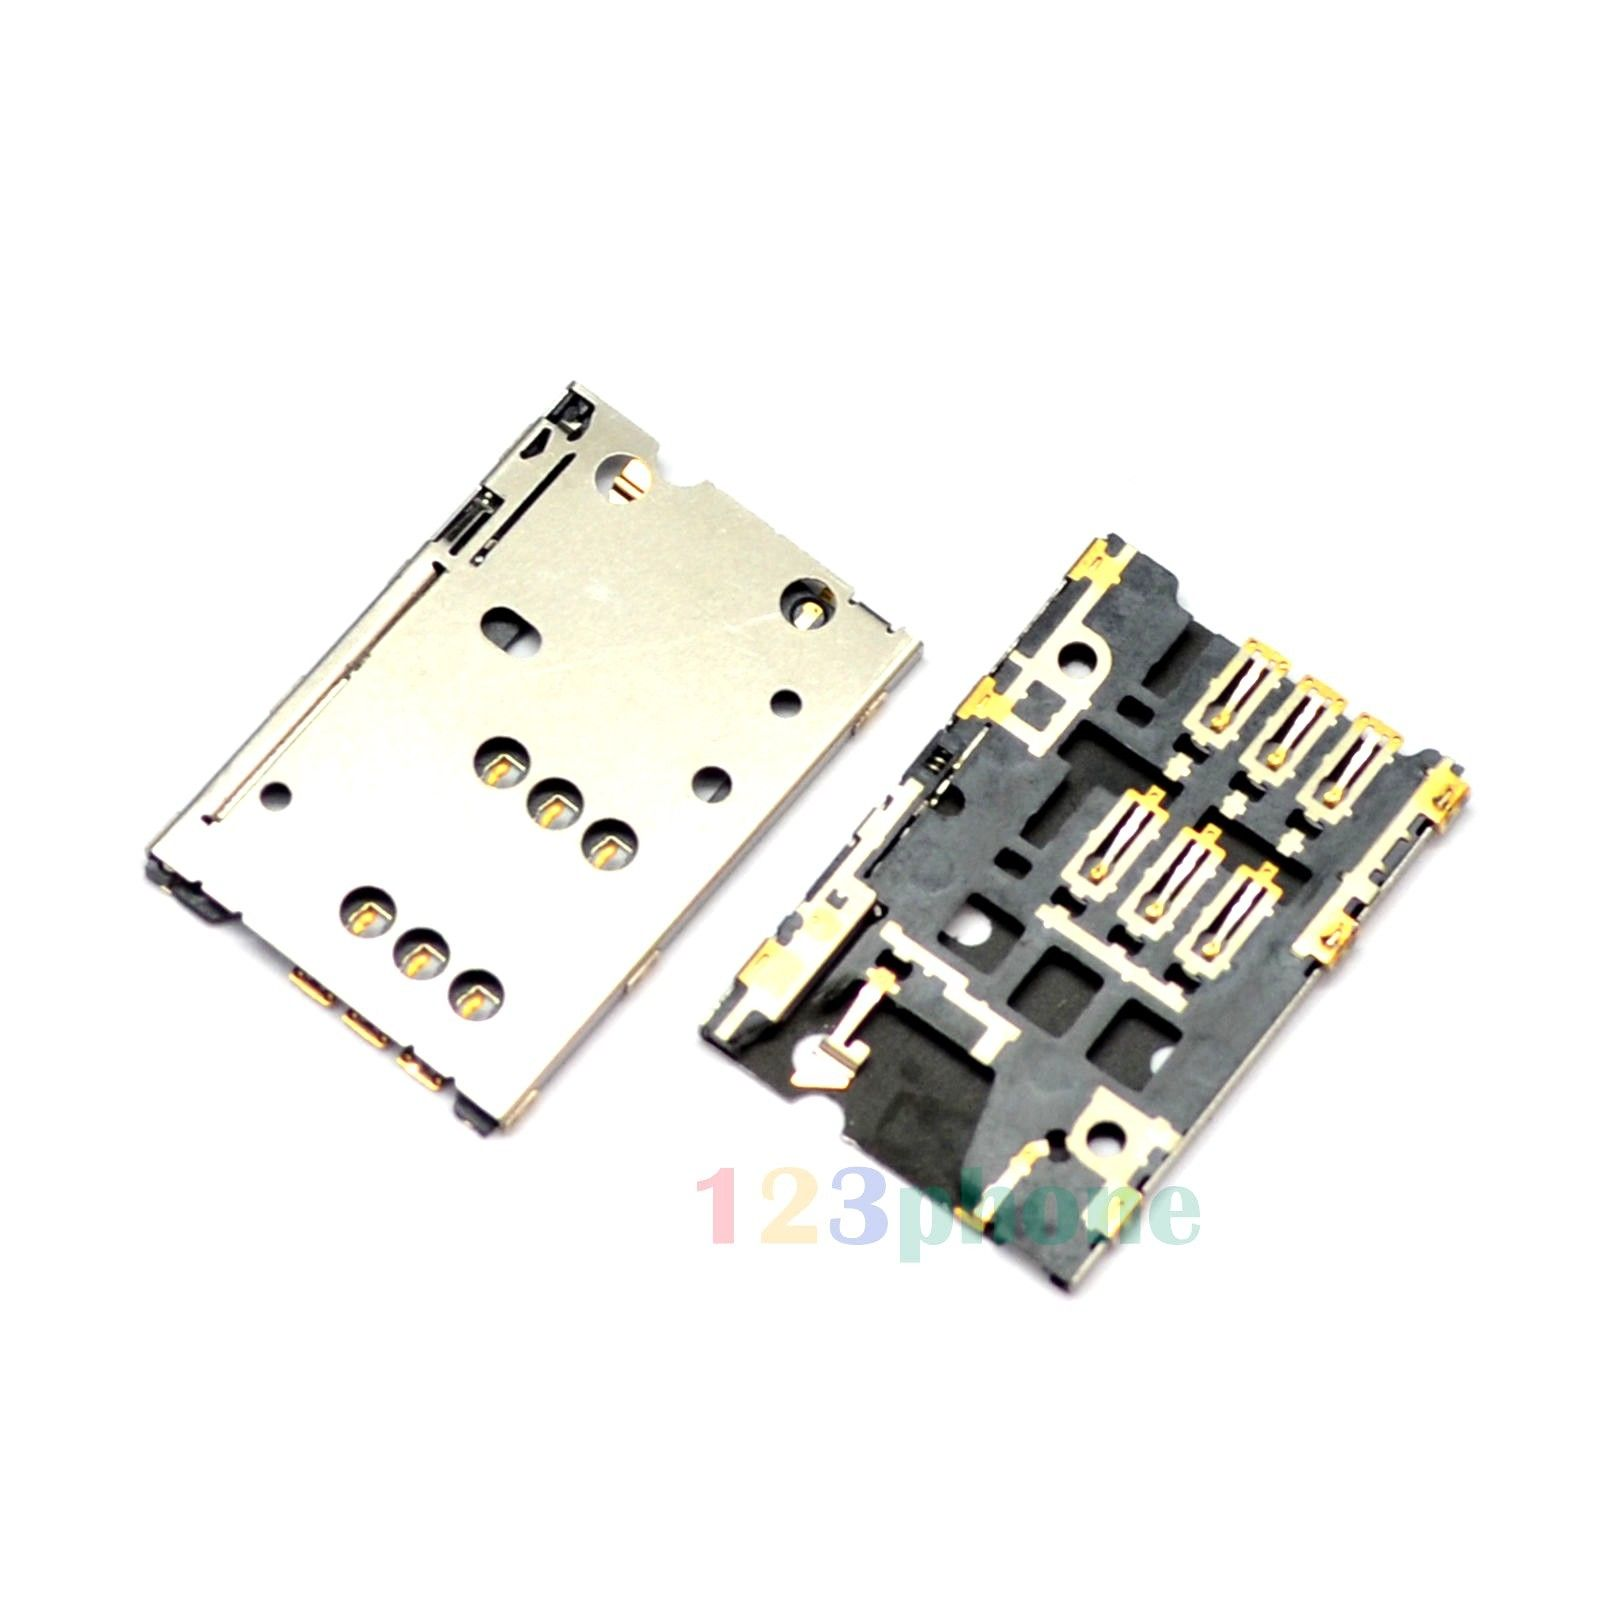 Brand new inner sim card reader slot tray holder for nokia n8 f 316 product view reheart Choice Image